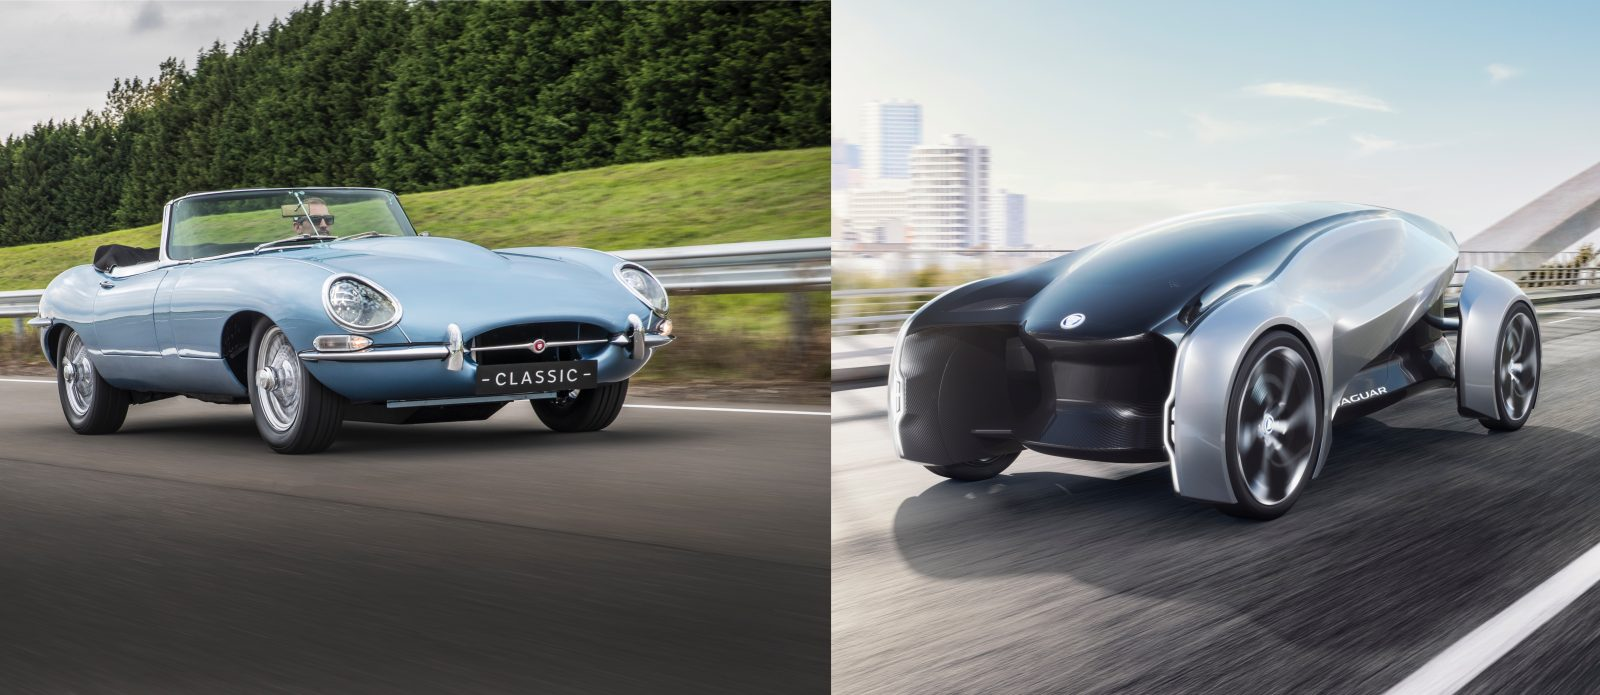 Jaguar Will Add Electric Powertrains To All New Cars By 2020